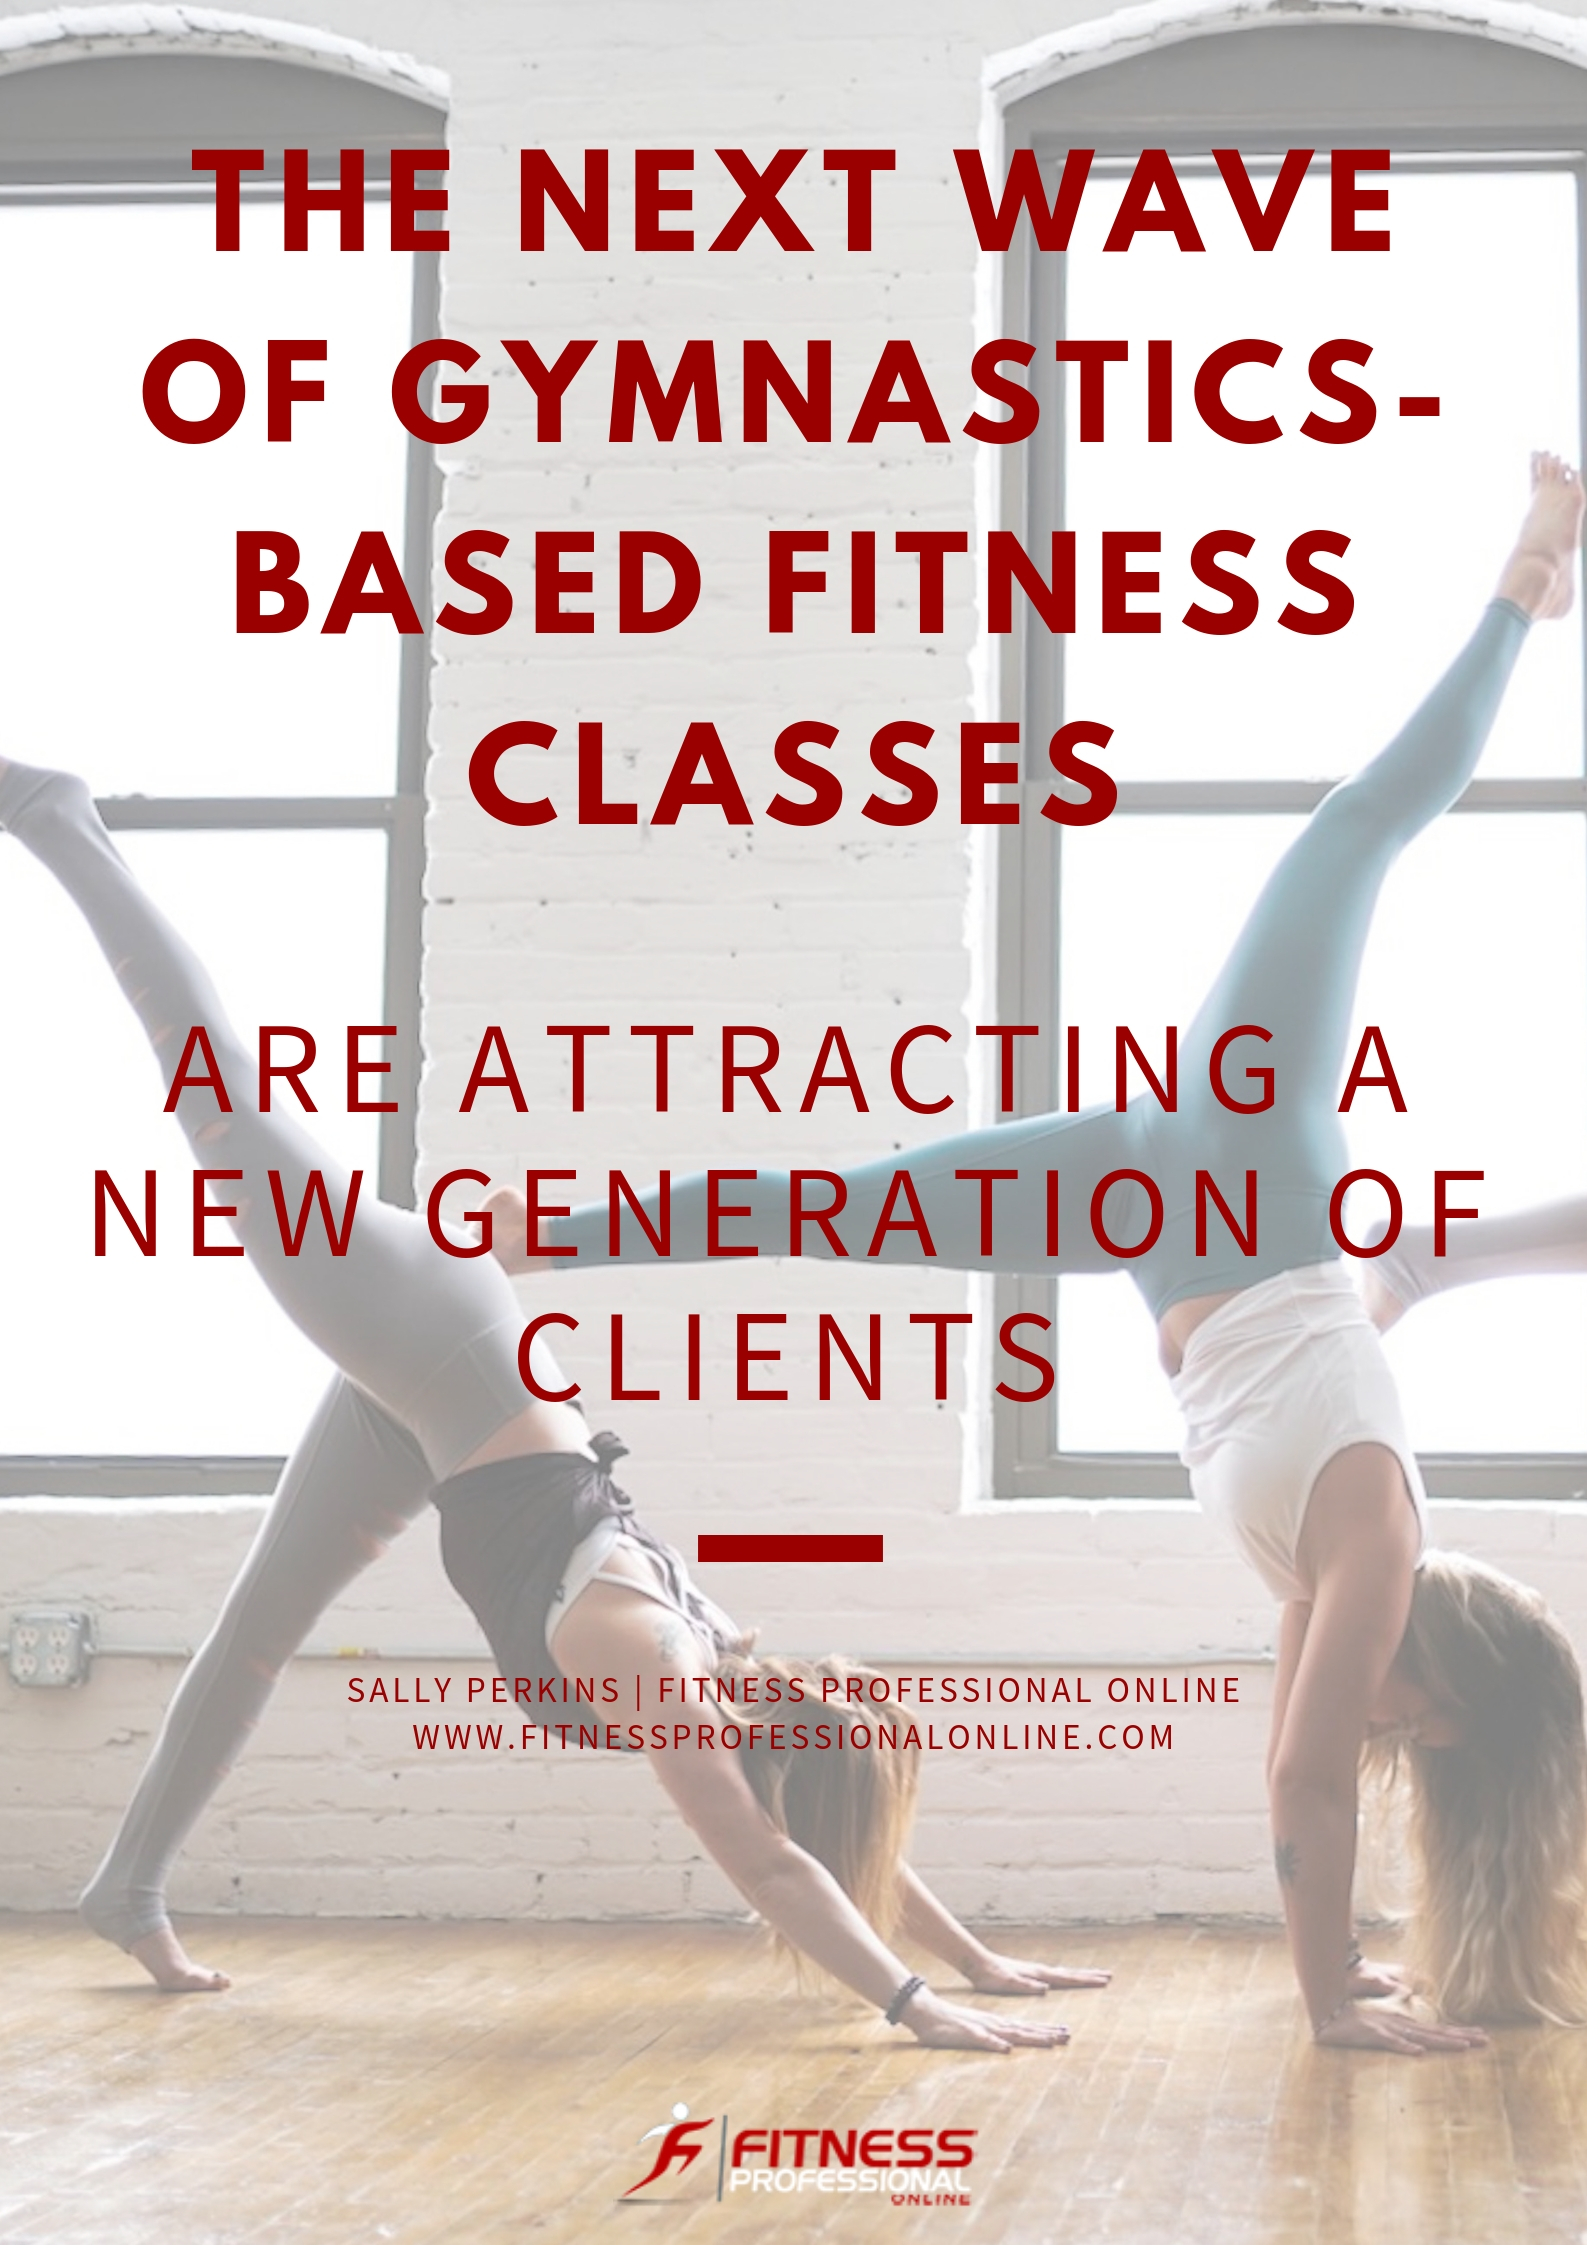 More than one in five Americans belong to a gym or health club, but only a fraction of those clients regularly work out or attend fitness classes.